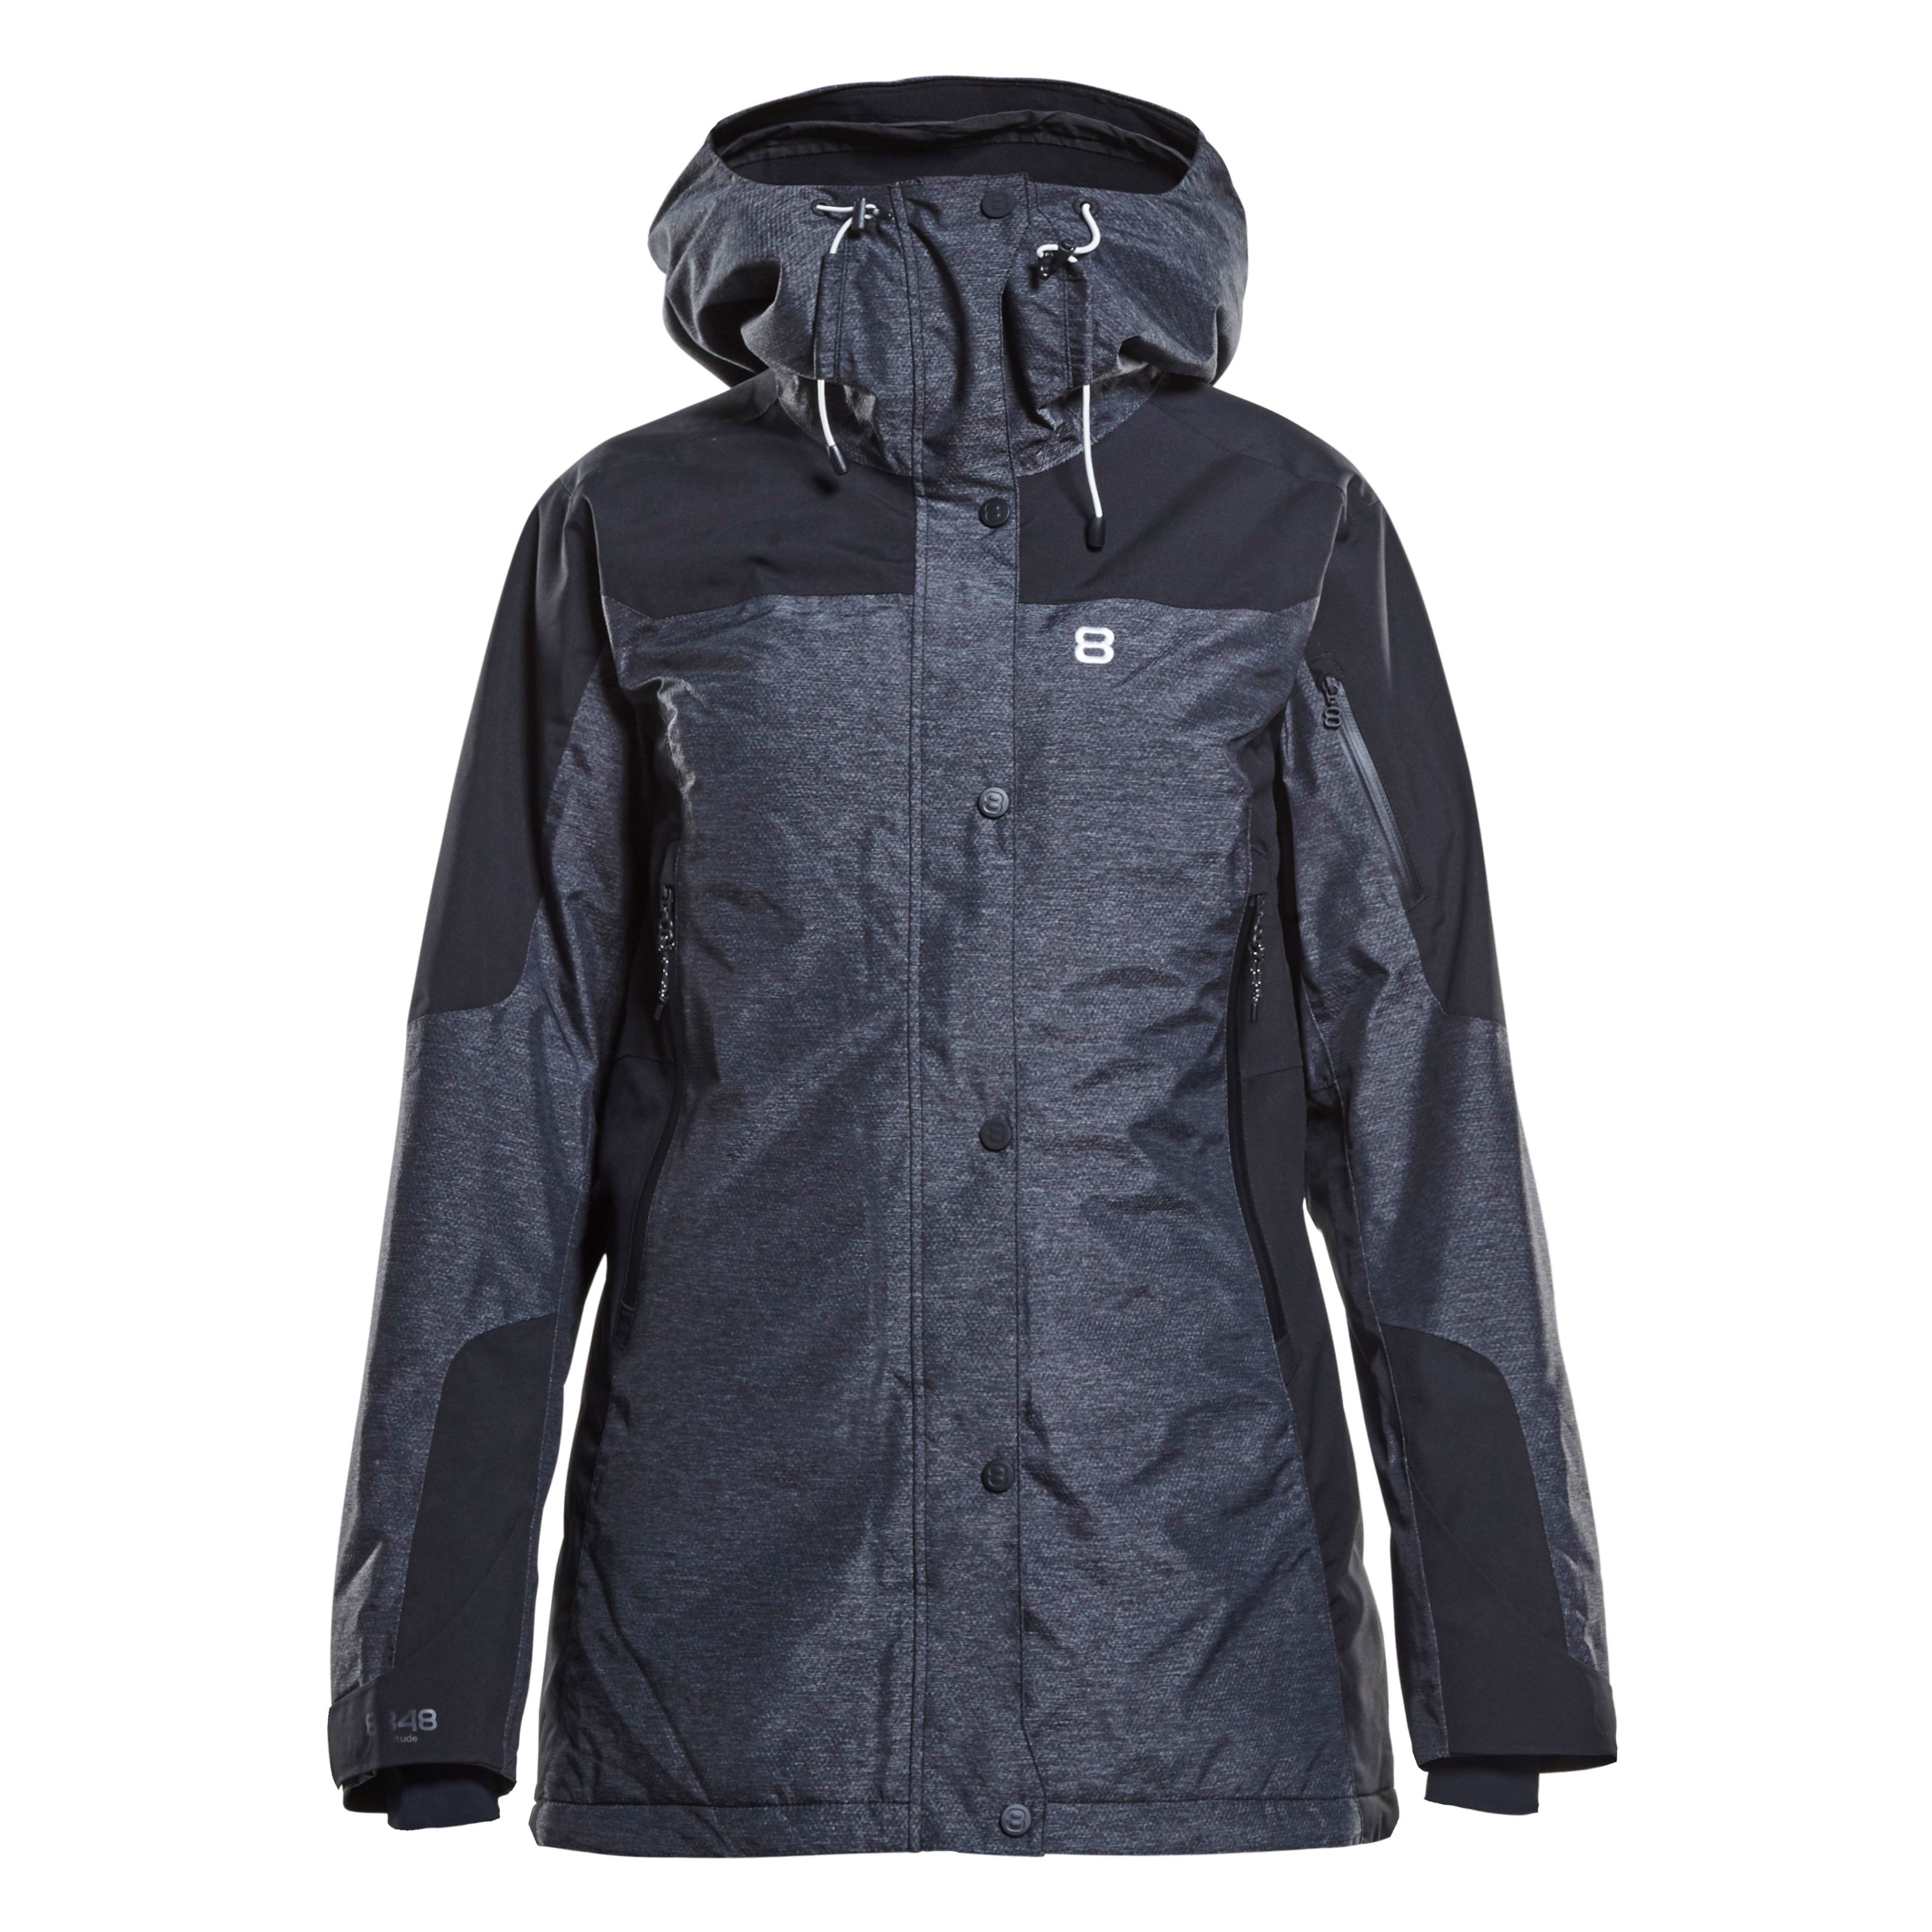 69473dfc Buy 8848 Altitude Sienna Women's Jacket from Outnorth